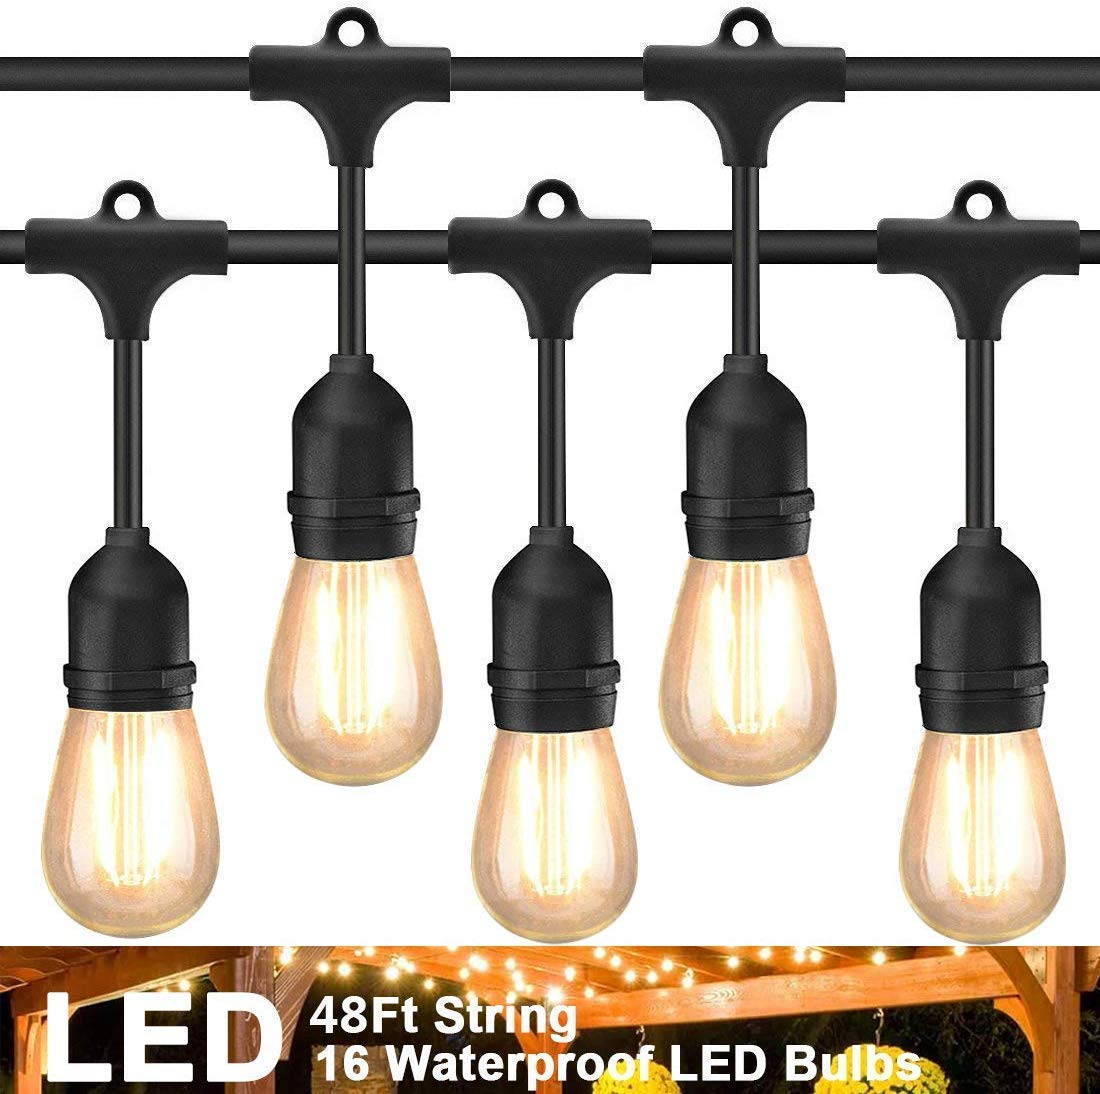 Rybozen 48Ft LED Outdoor String Lights With 16 Hanging